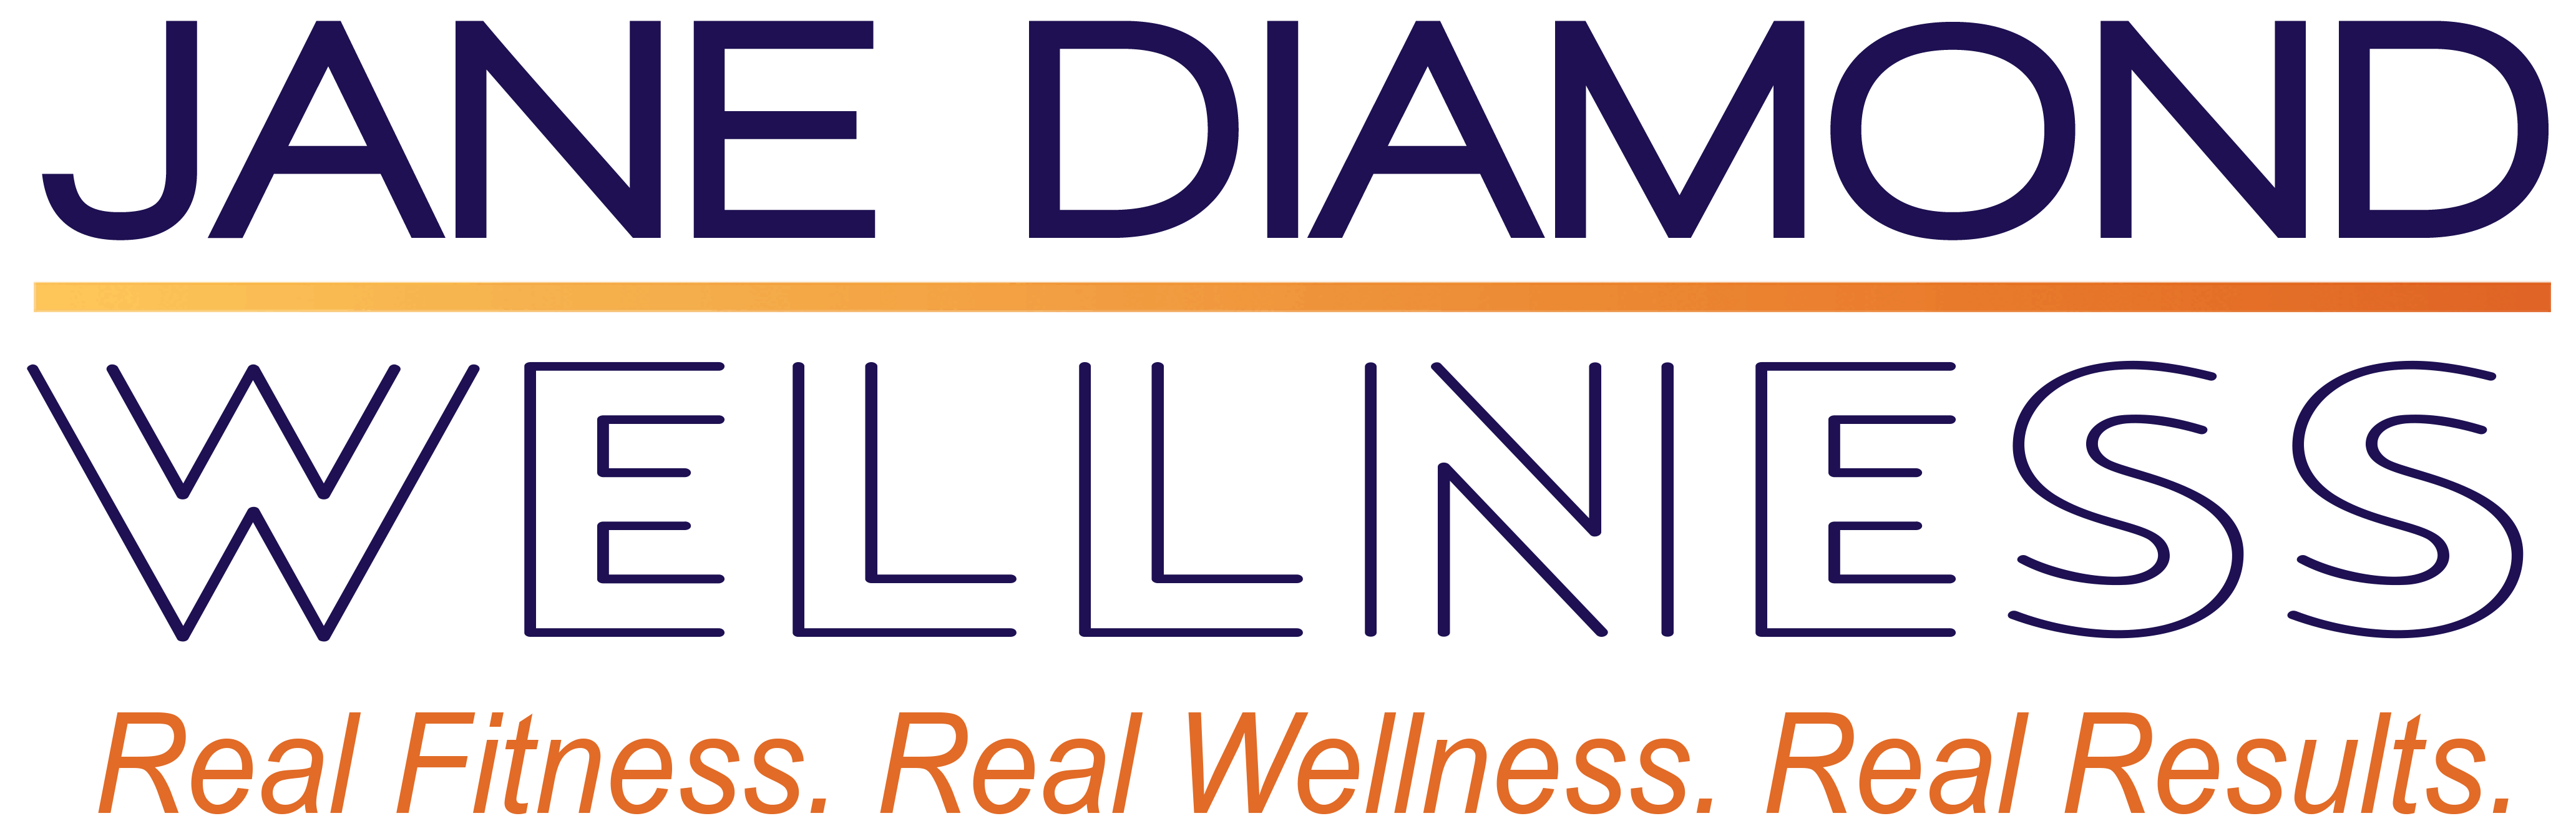 Jane Diamond Wellness